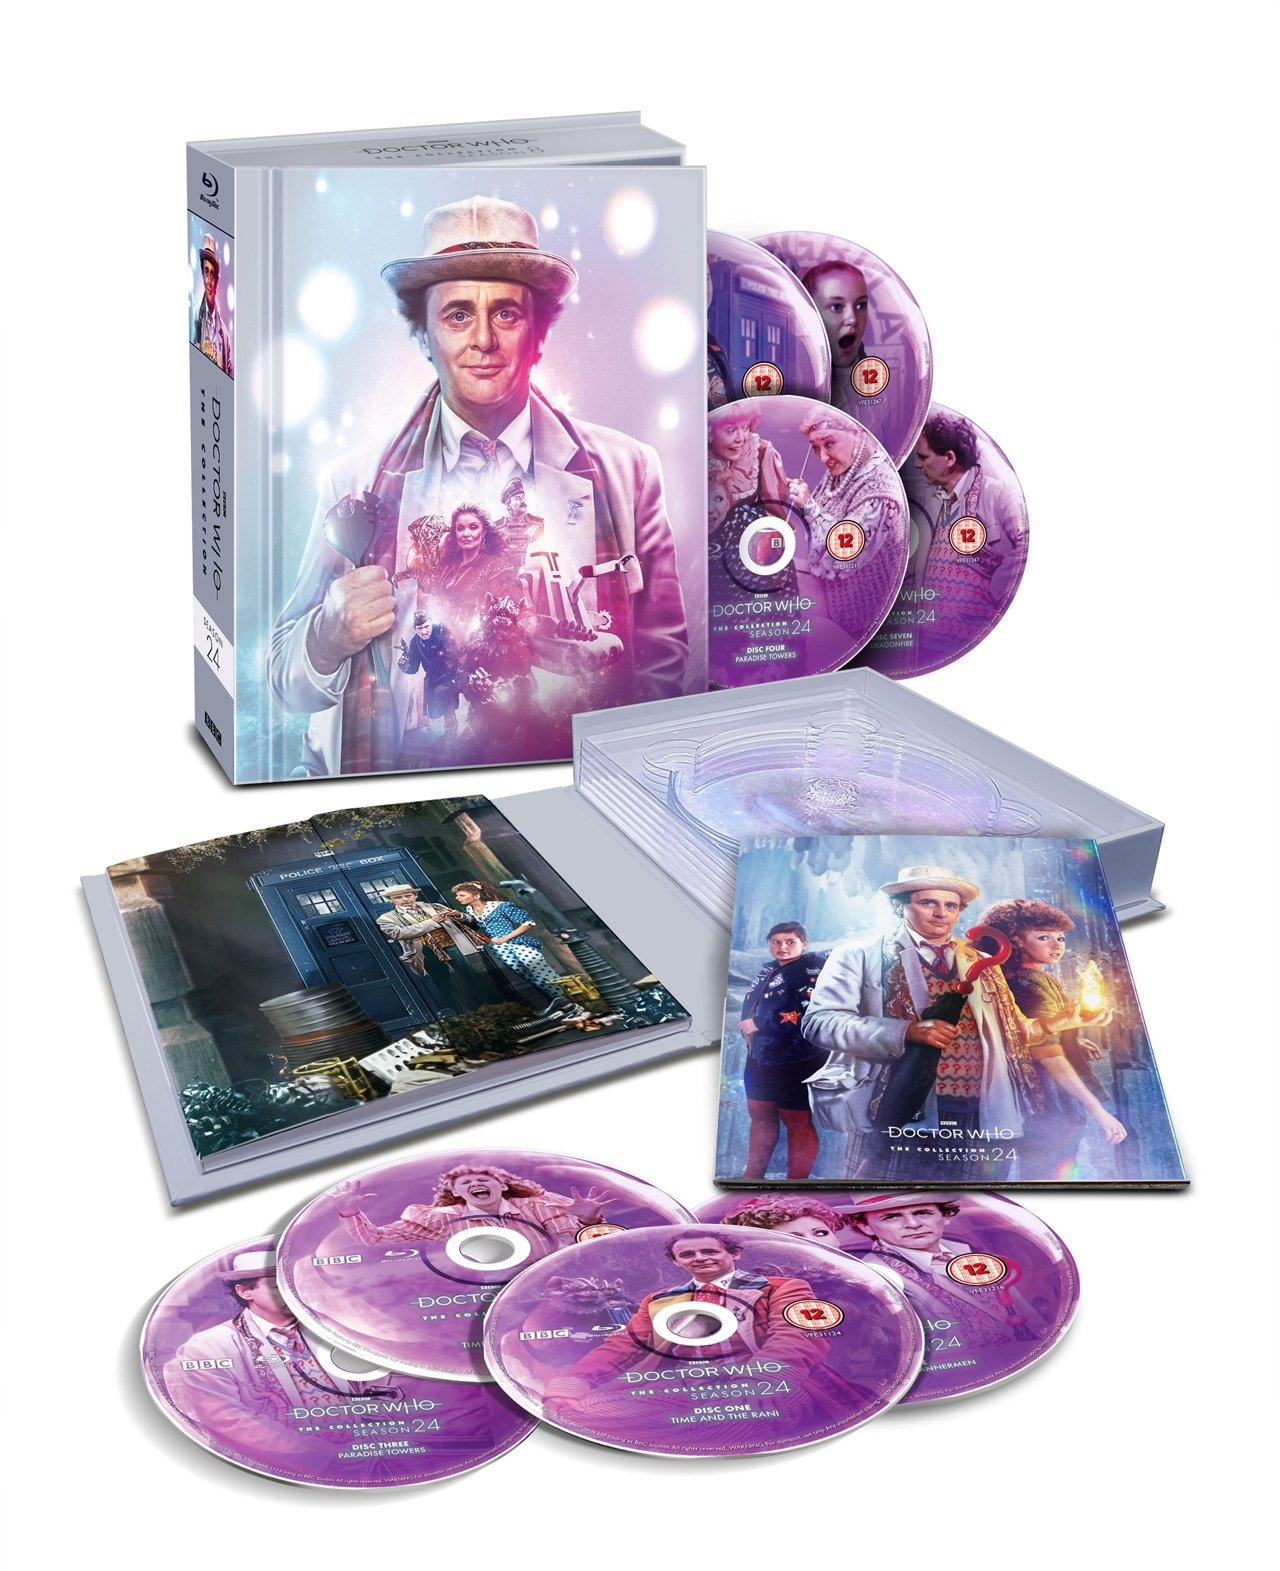 Doctor Who: The Collection - Season 24 Limited Edition Box Set - 1